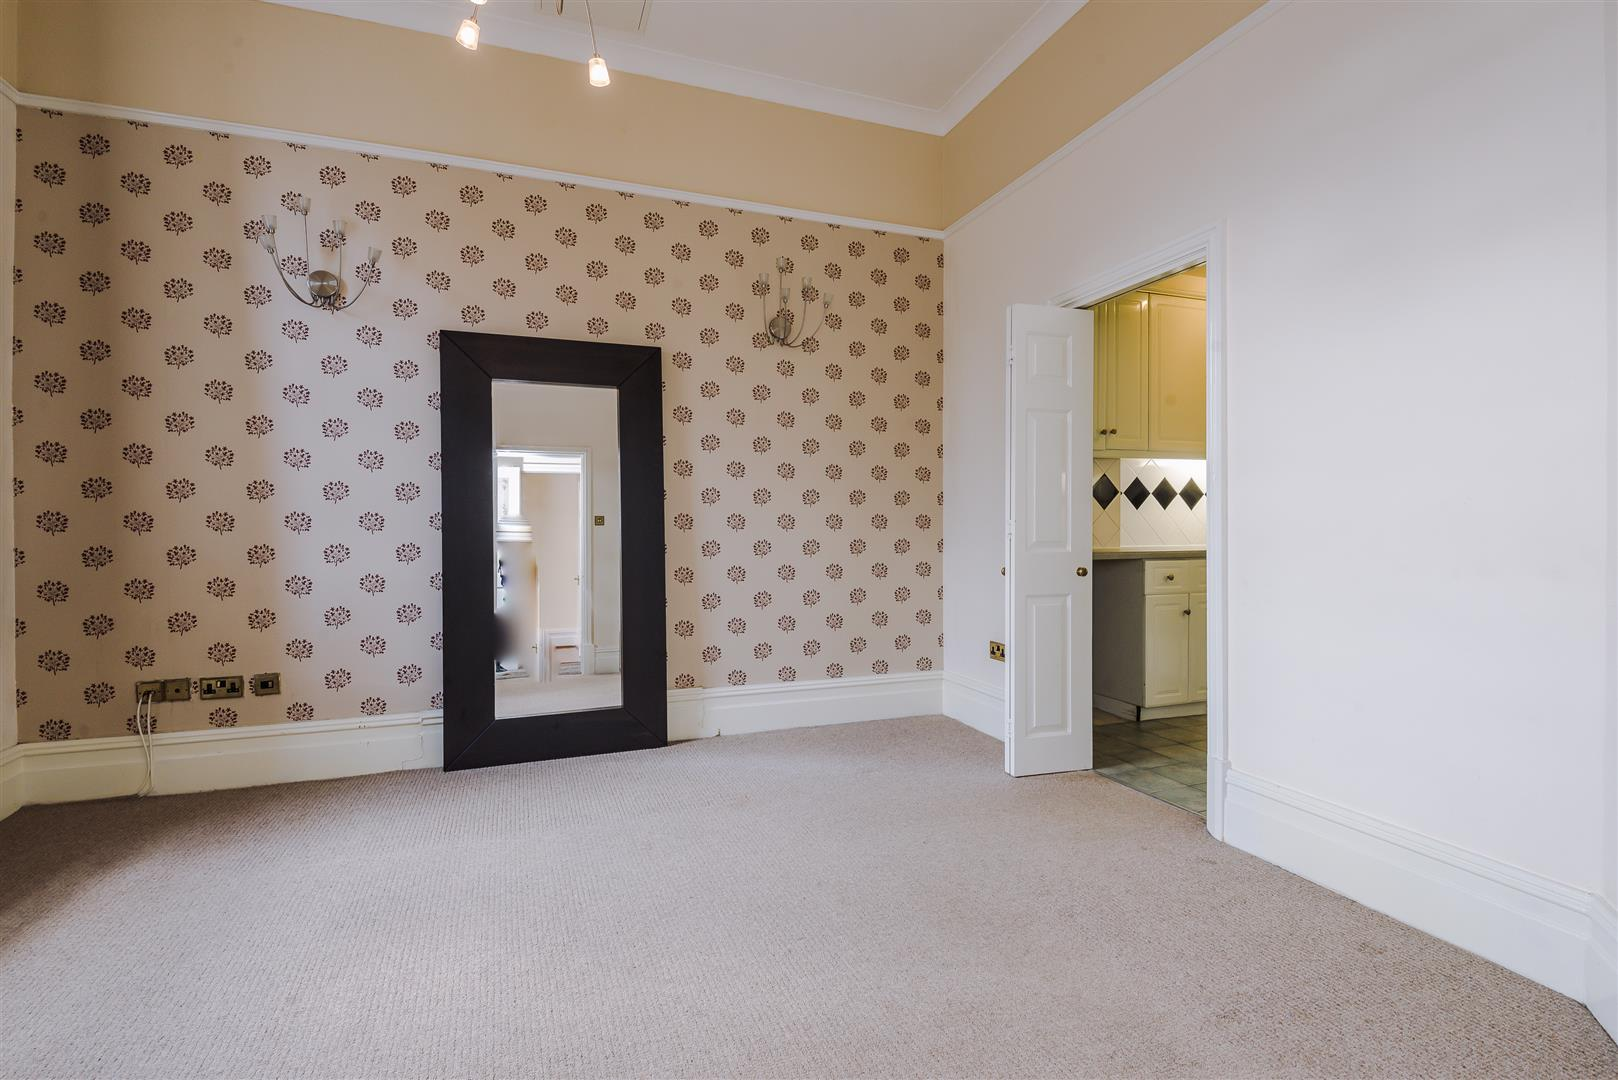 2 Bedroom Apartment For Sale Image 1